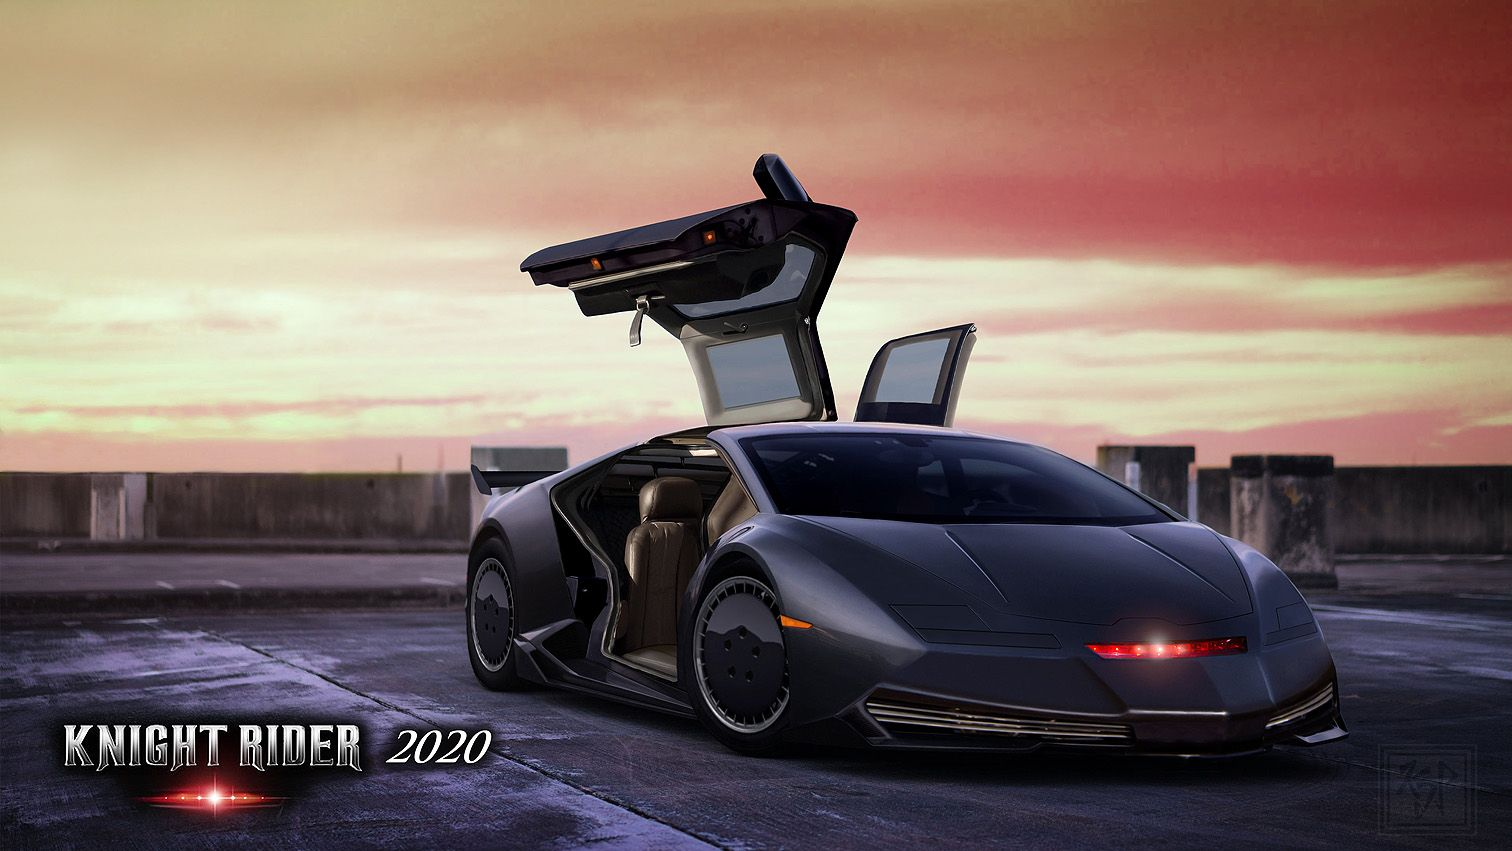 My Funwithphotoshopfriday Photo My Design For A Modern Version New Version Of K I T T From Knightrider Using A Lamborghini Body As Knight Rider Rider Photo